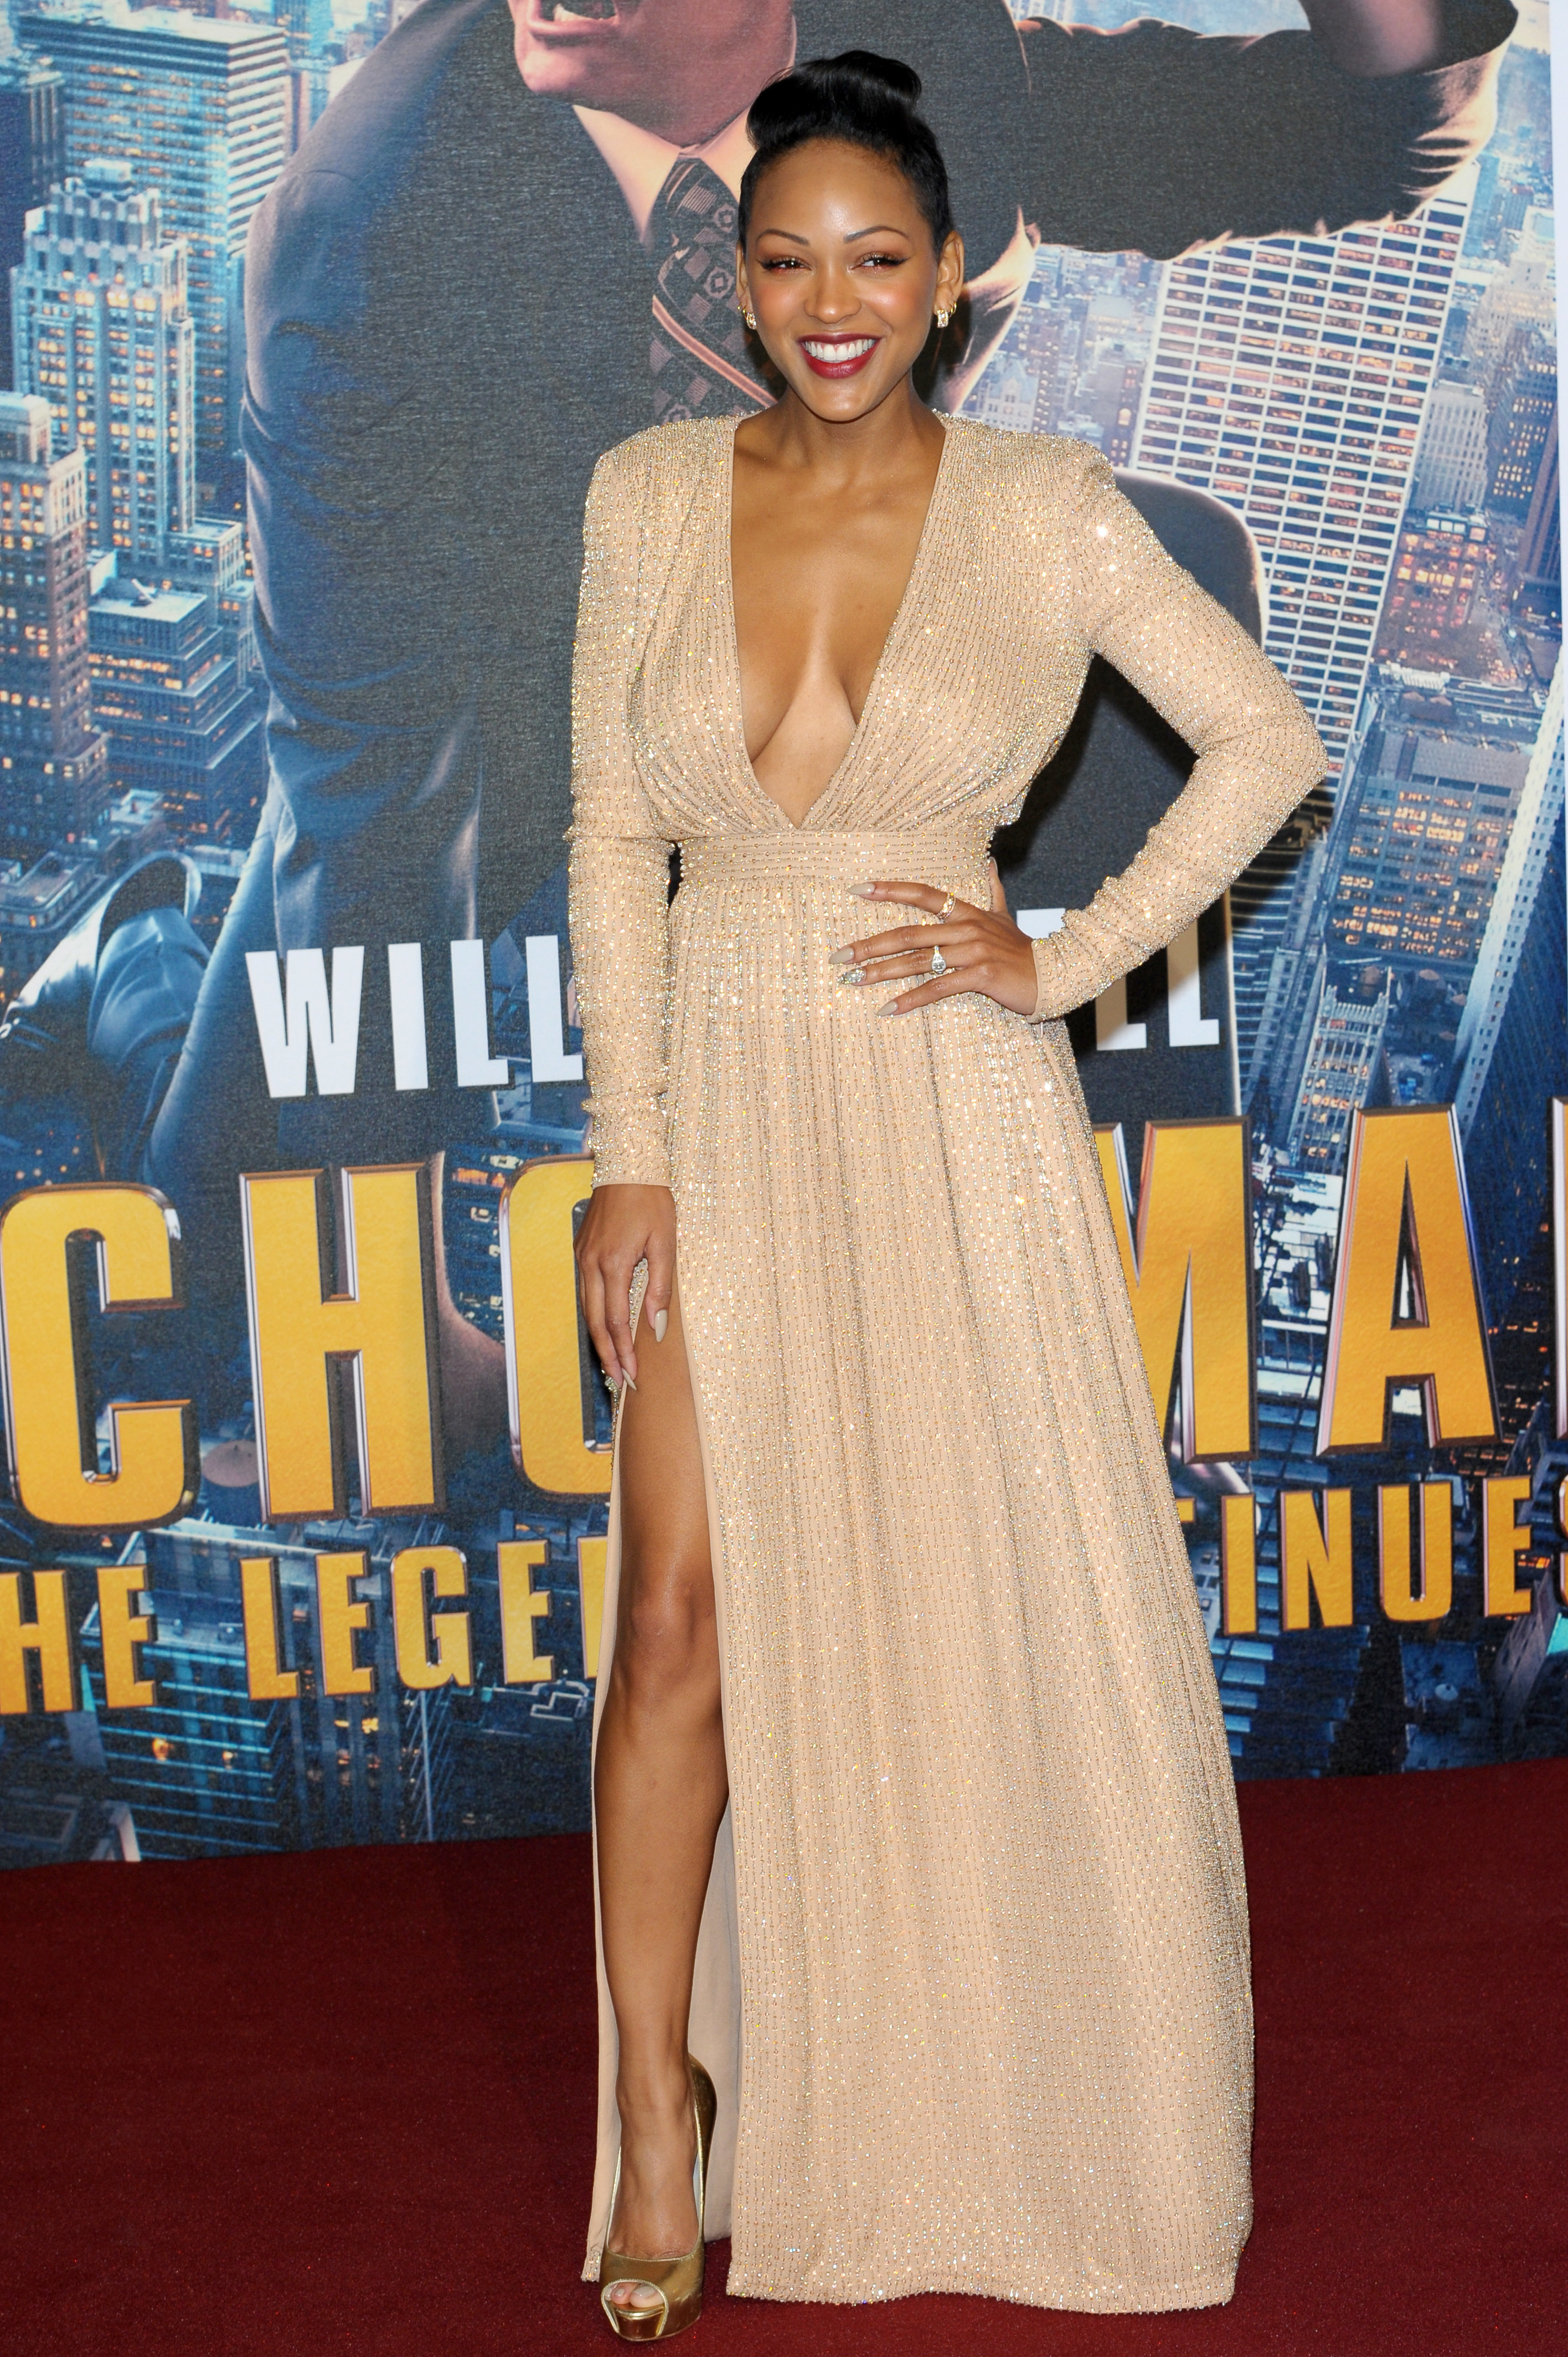 Meagan Good photo gallery - 271 high quality pics of ...